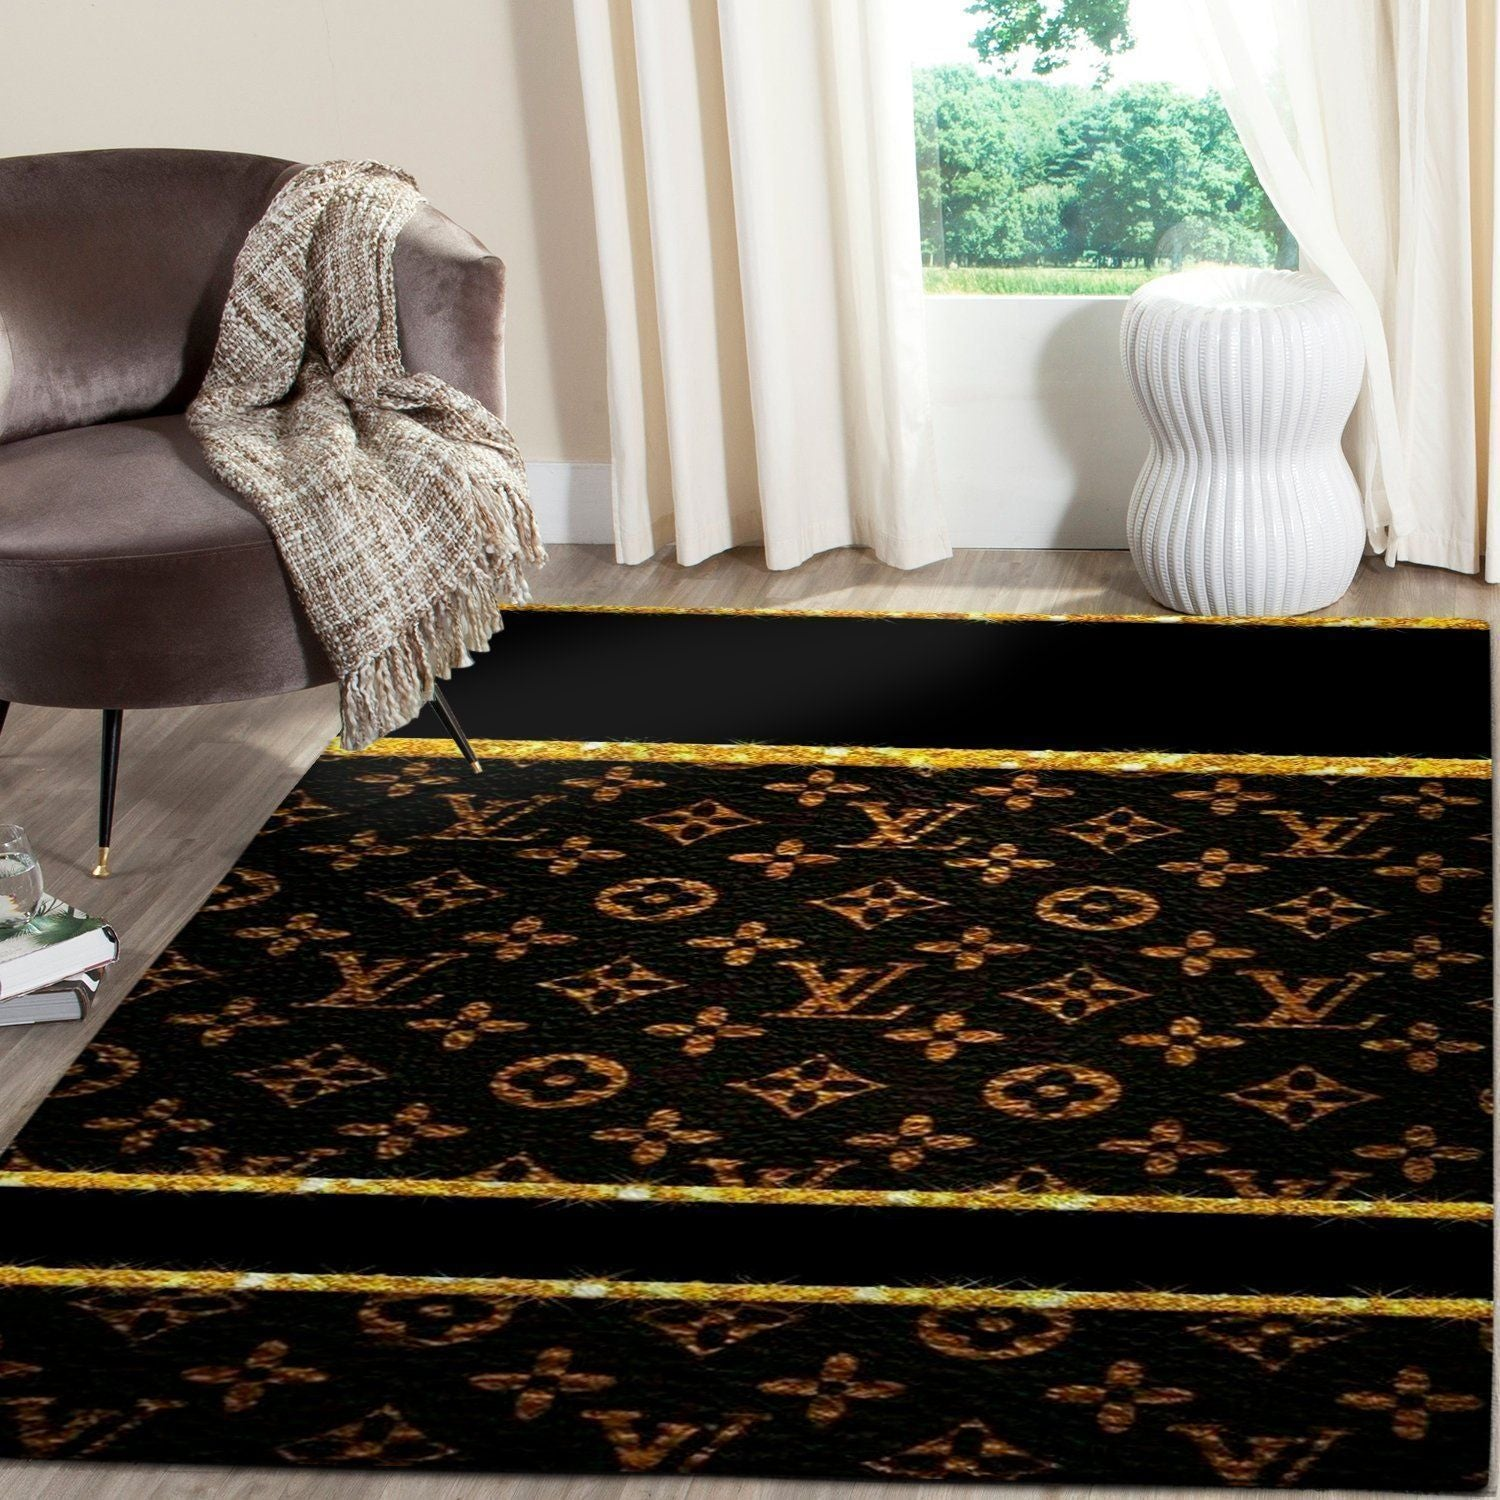 Louis Vuitton Area Rug, Dark Hypebeast Carpet, Luxurious Fashion Brand Logo Living Room  Rugs, Floor Decor 081119